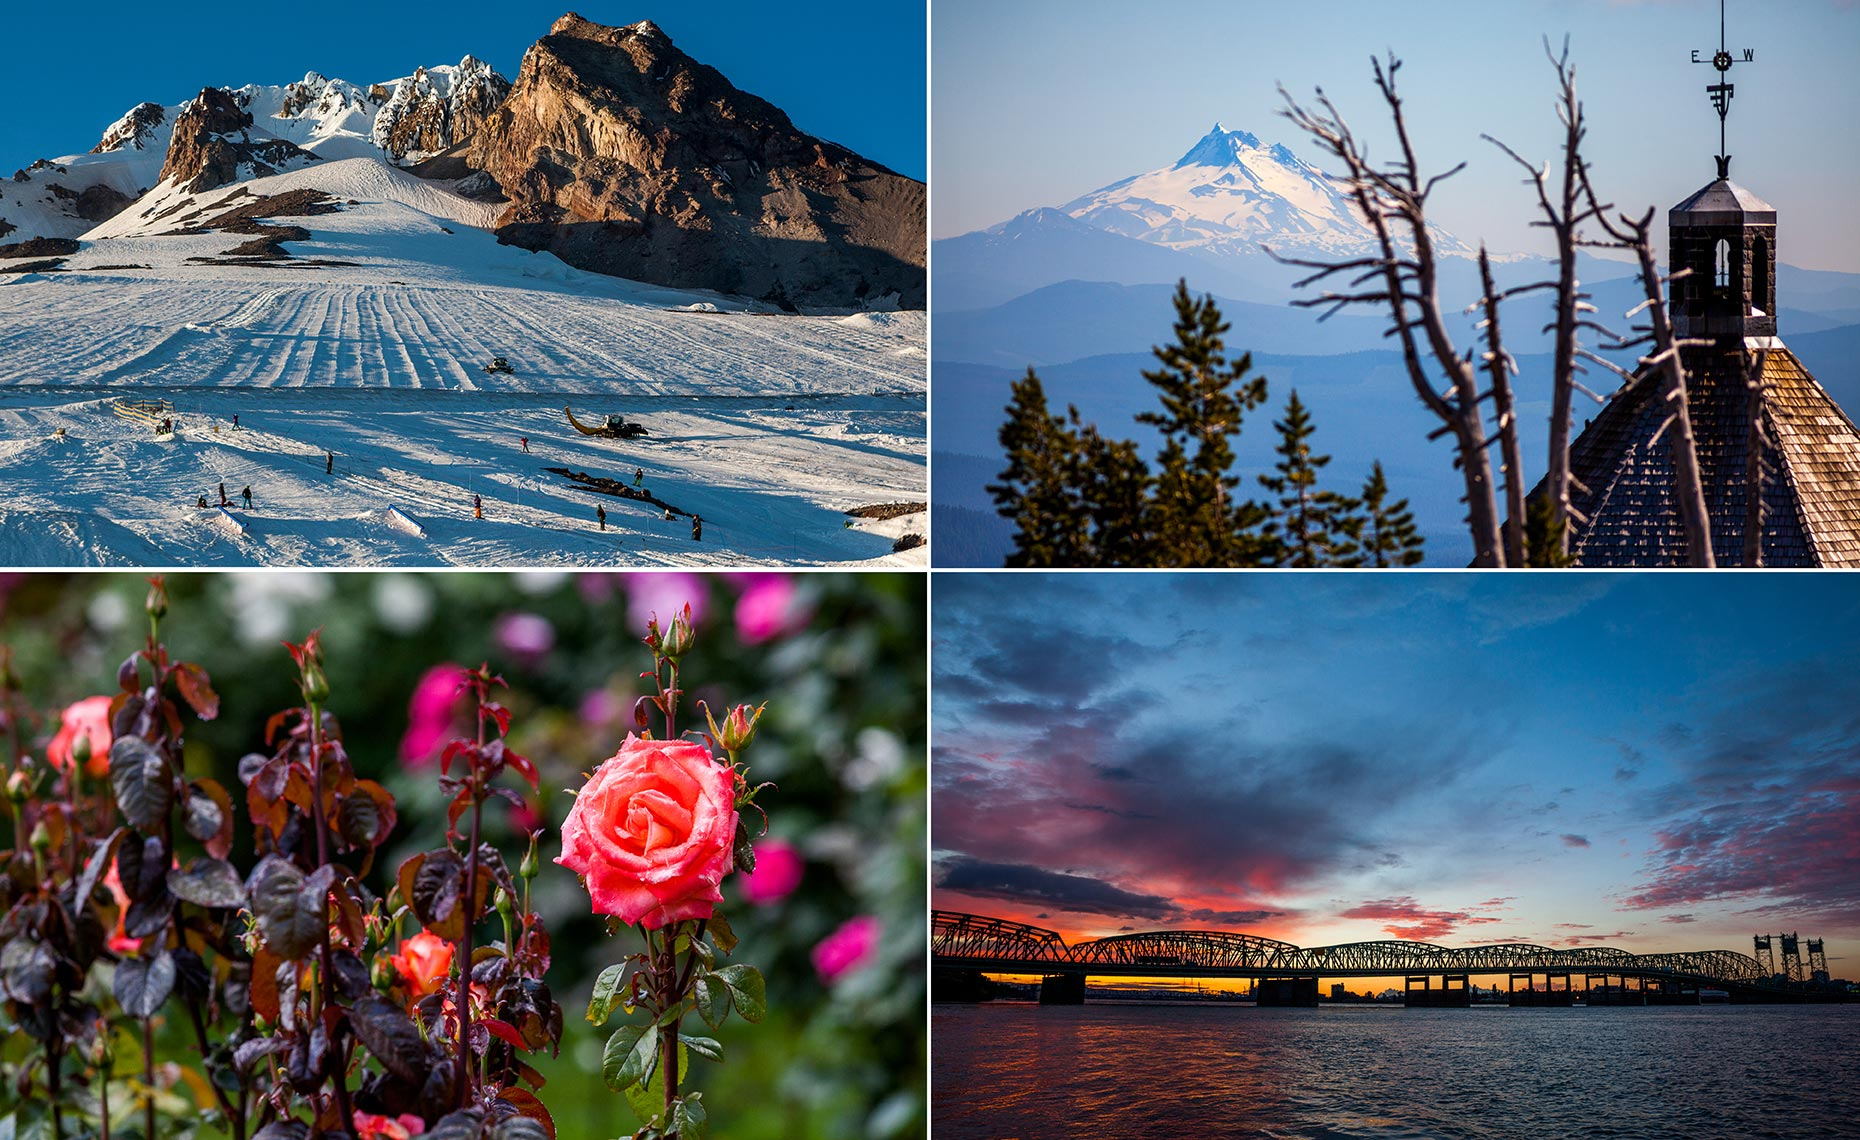 31_Mt_Hood_Portland_Environment_Landscape_Chris_Wellhausen_Photography.JPG